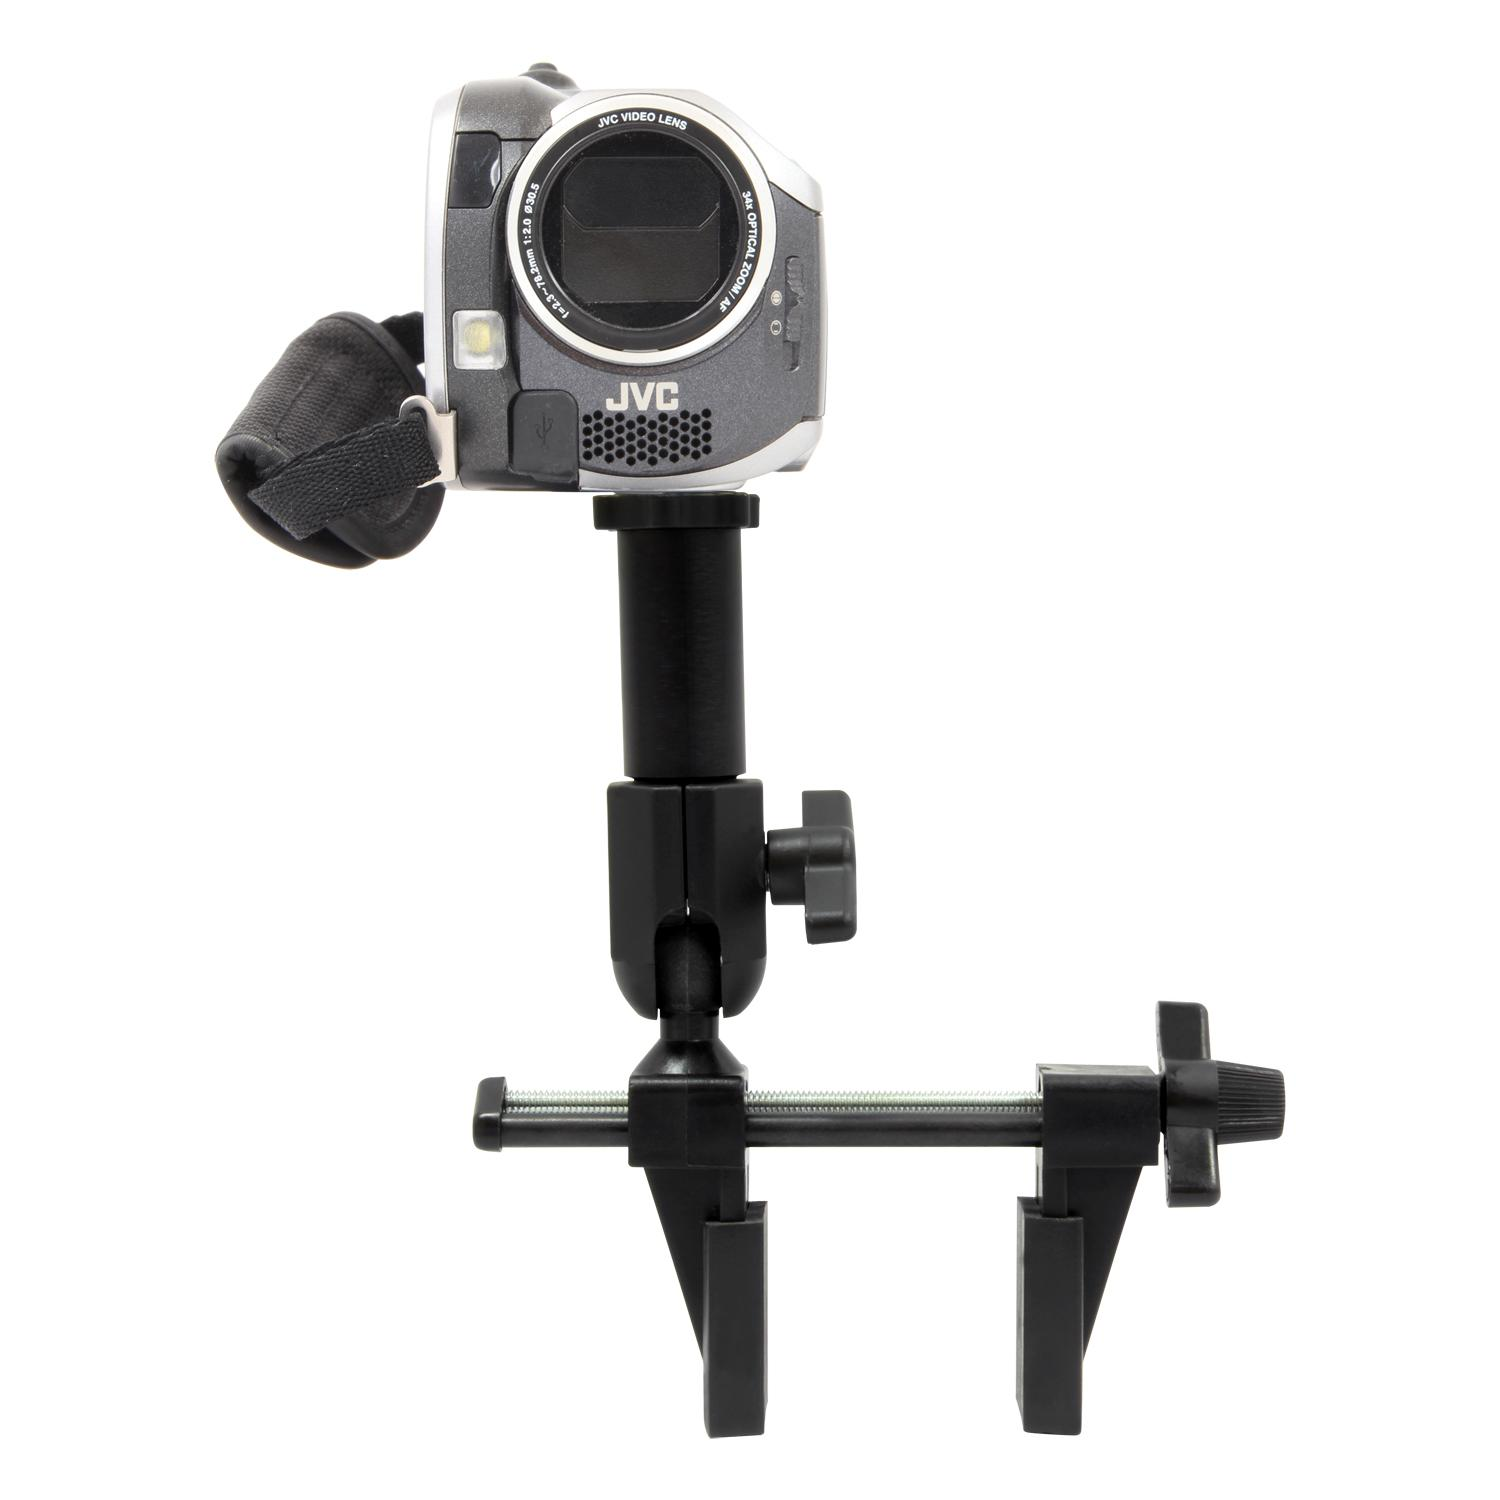 ... Gecko Vise Camera Mount : Professional Video Accessories : Camera